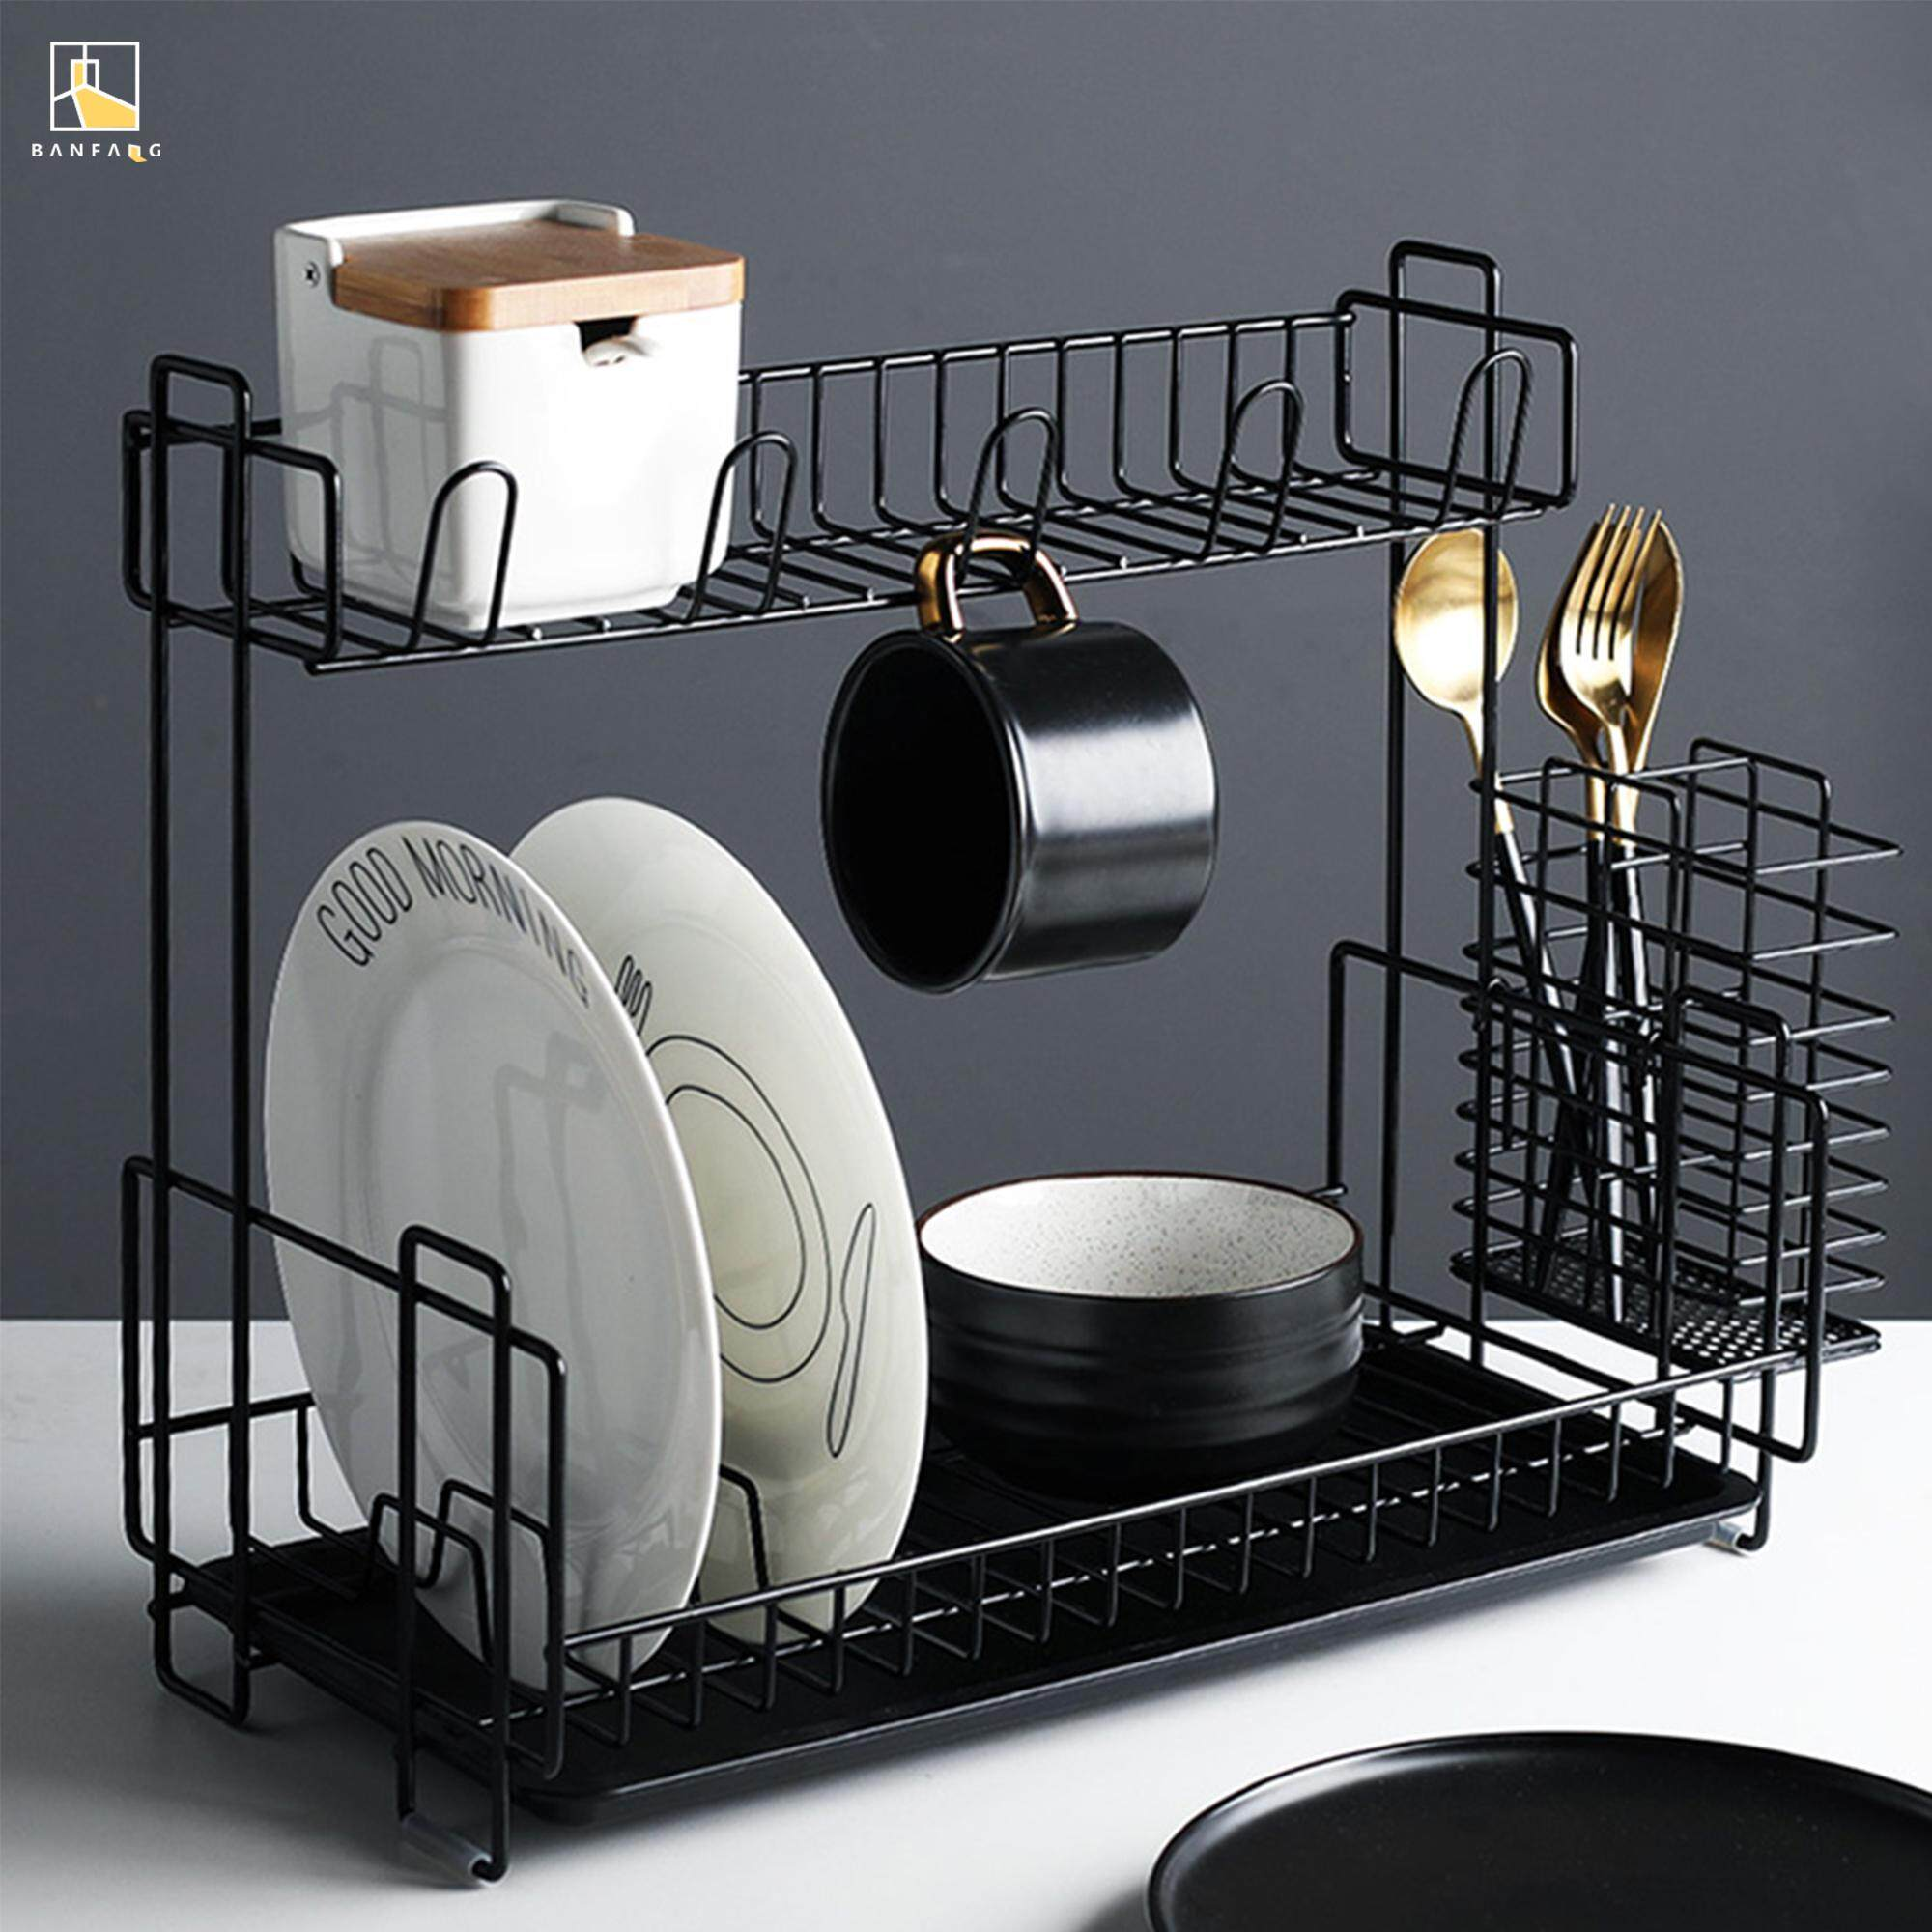 BANFANG Multi-function iron art waterboard free shipping dish rack kitchen cabinet storage rack lunch box rack kitchen rak pinggan dish drainer shelf rack kitchen storage cake stand stainless steel kitchen rack food container cake mould dish drying rack s